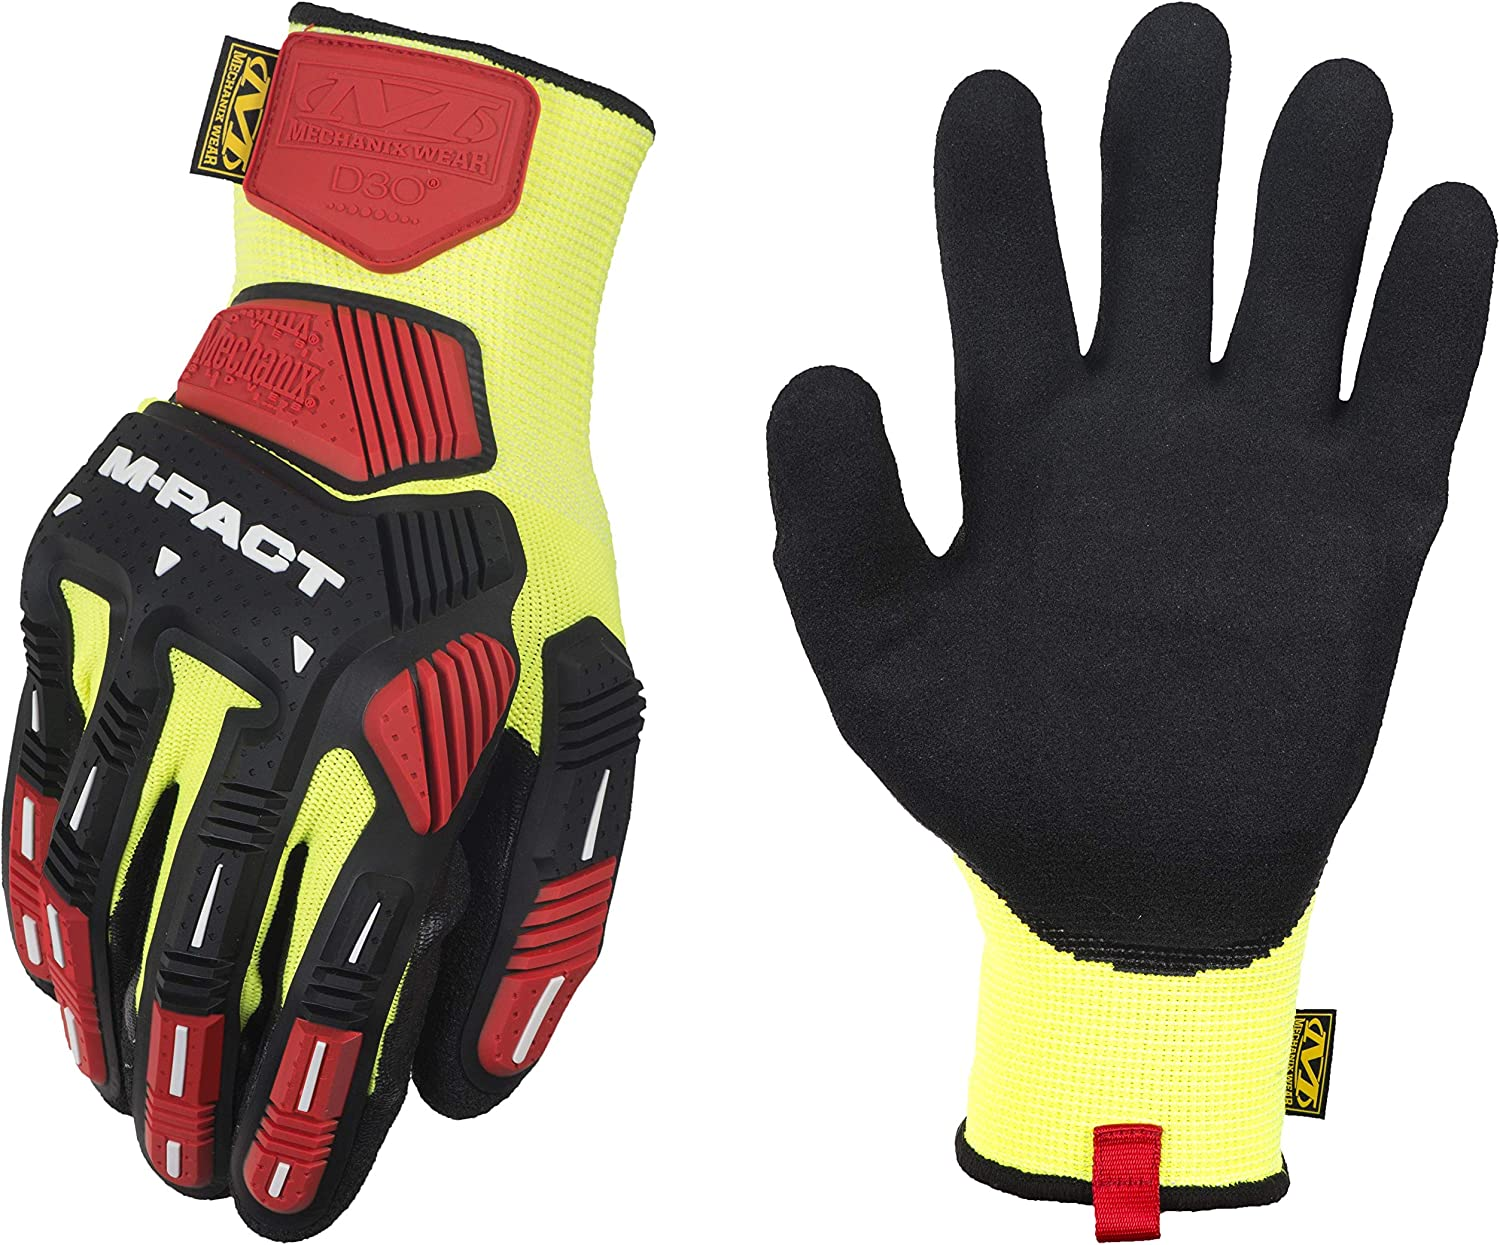 Mechanix Wear: M-Pact Sale special price Knit CR3A3 Max 66% OFF Work Yellow Medium Gloves Bla